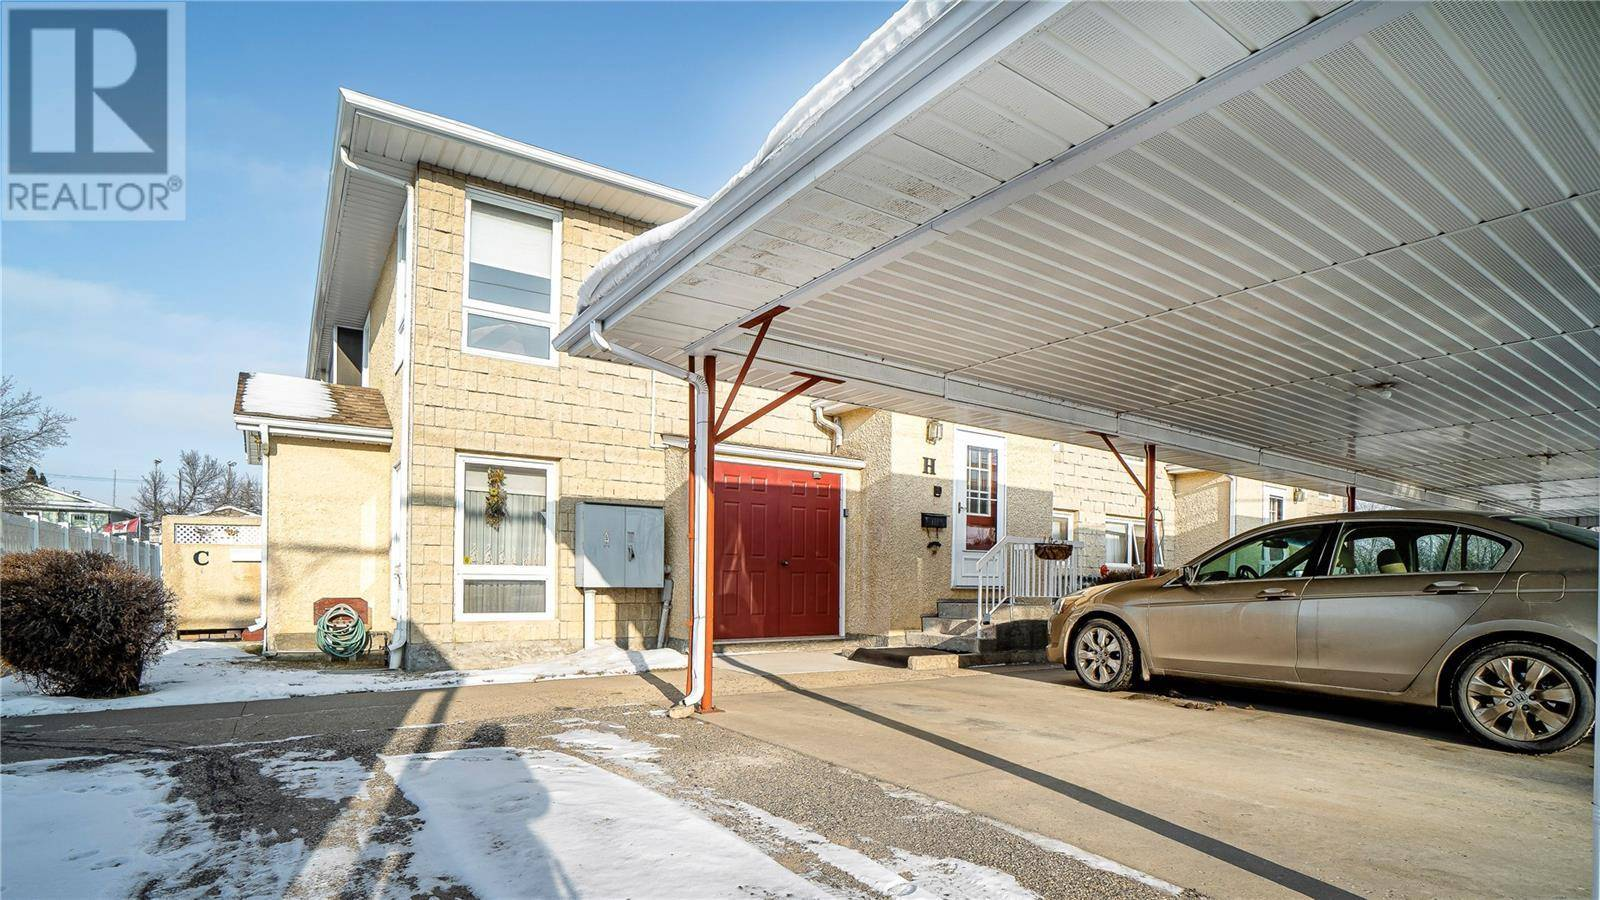 Condo for sale at 279 Hochelaga St E Unit H Moose Jaw Saskatchewan - MLS: SK795373